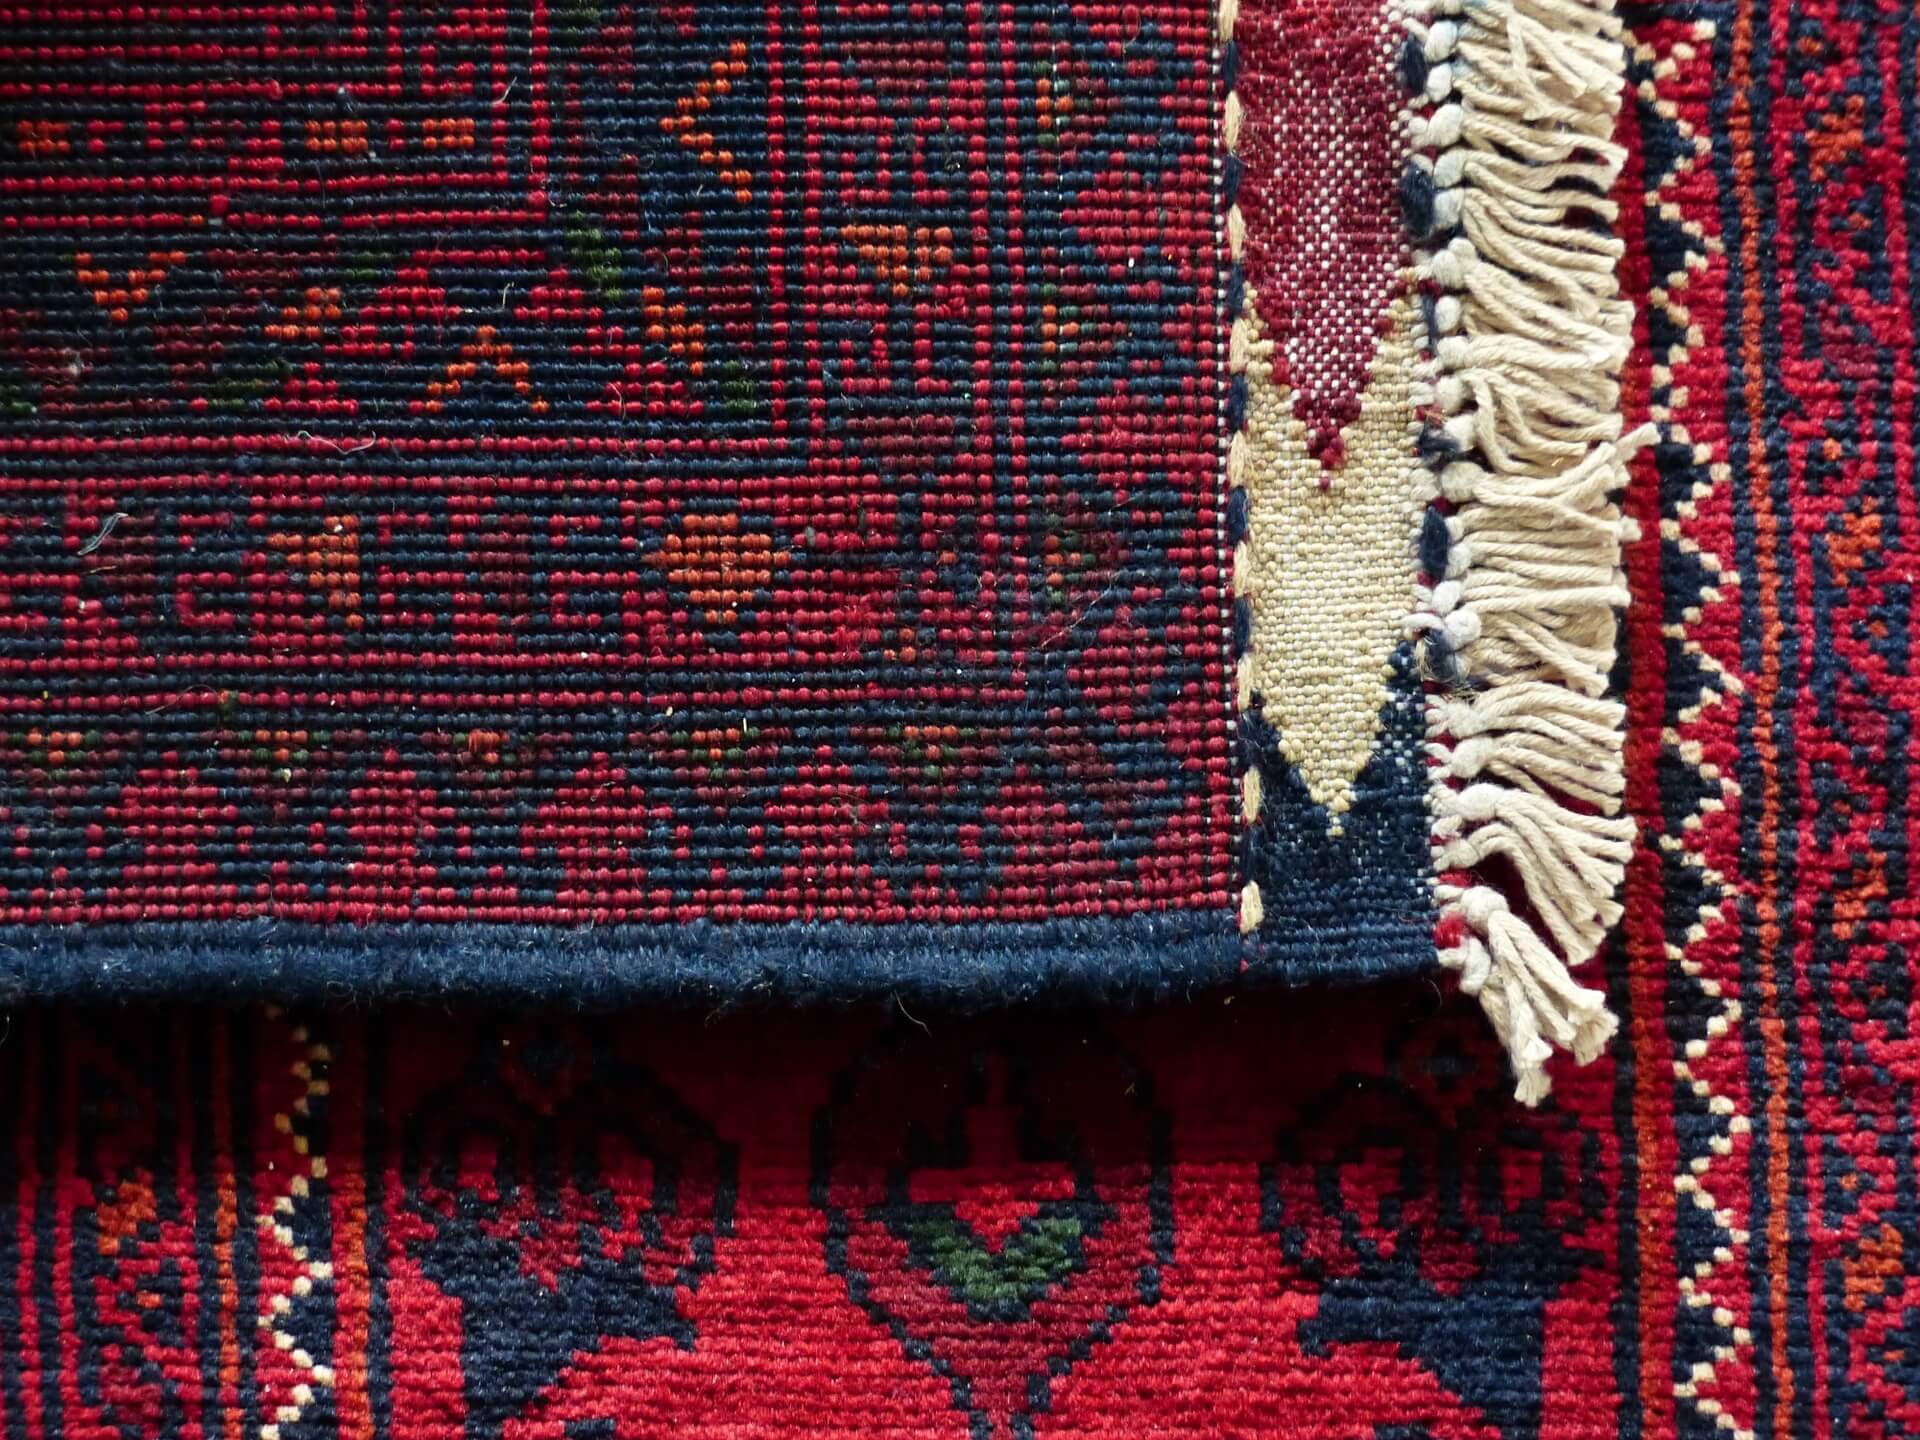 Blue and maroon colored rugs